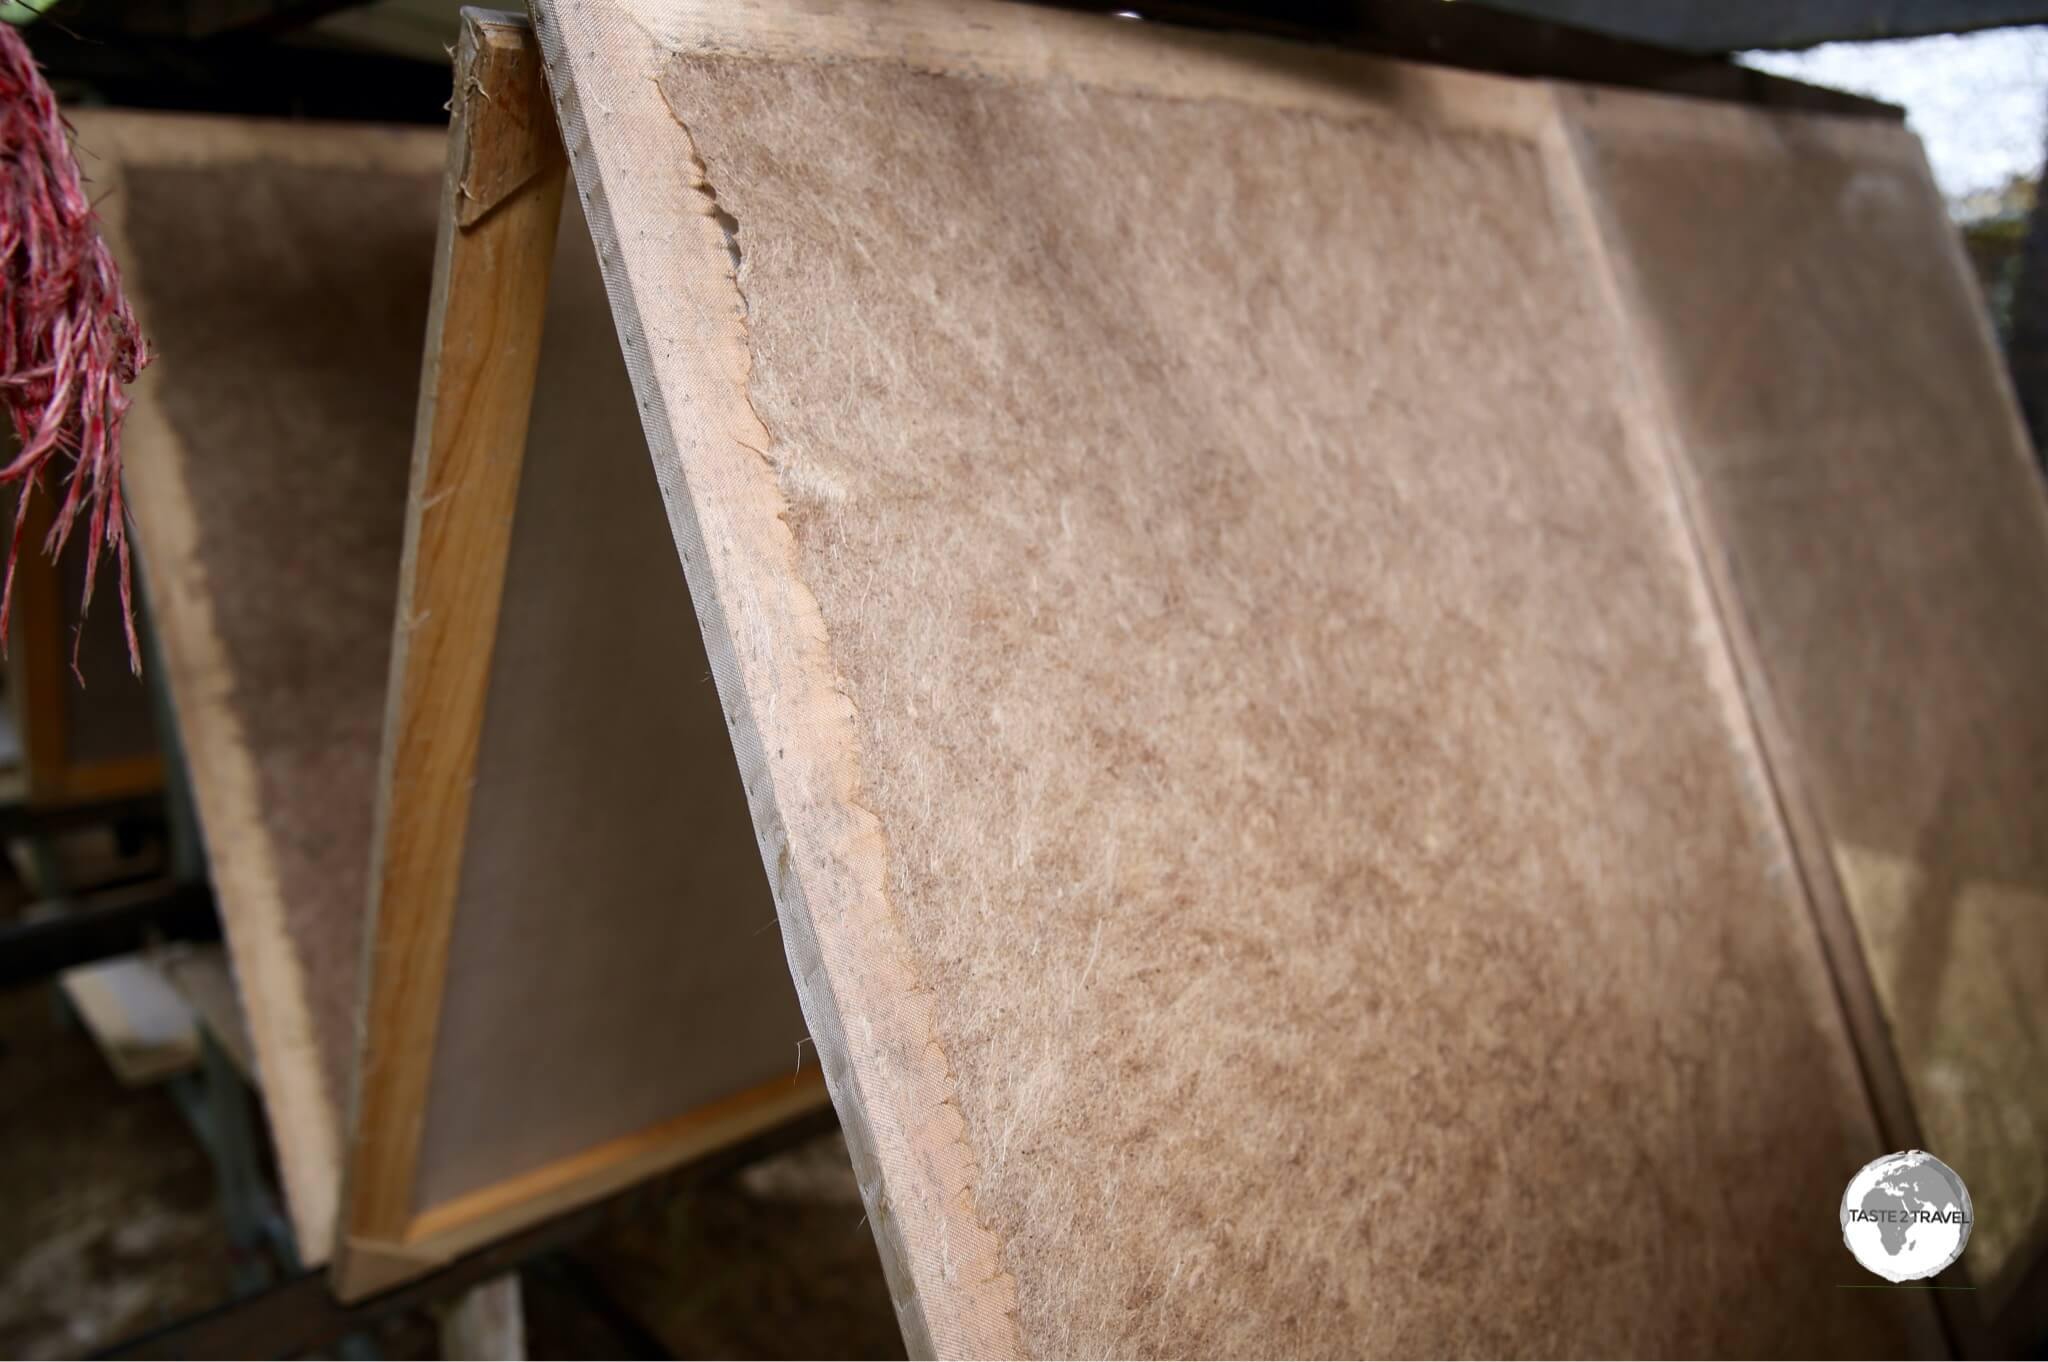 Step 4: The dried plant fibre is pulped with recycled paper and laid out to dry.